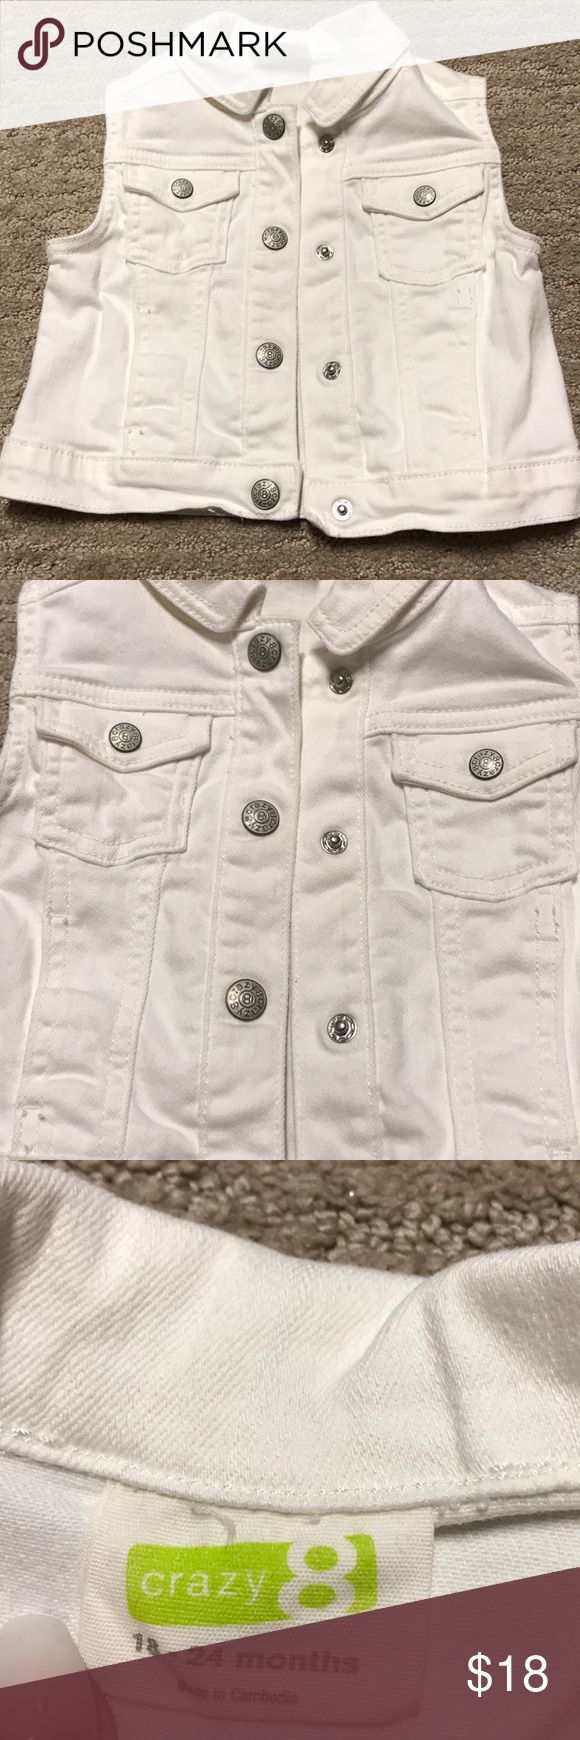 Baby White Jean Vest Great condition! Size 18-24 Months, white jean vest with snap buttons Crazy 8 Jackets & Coats Vests